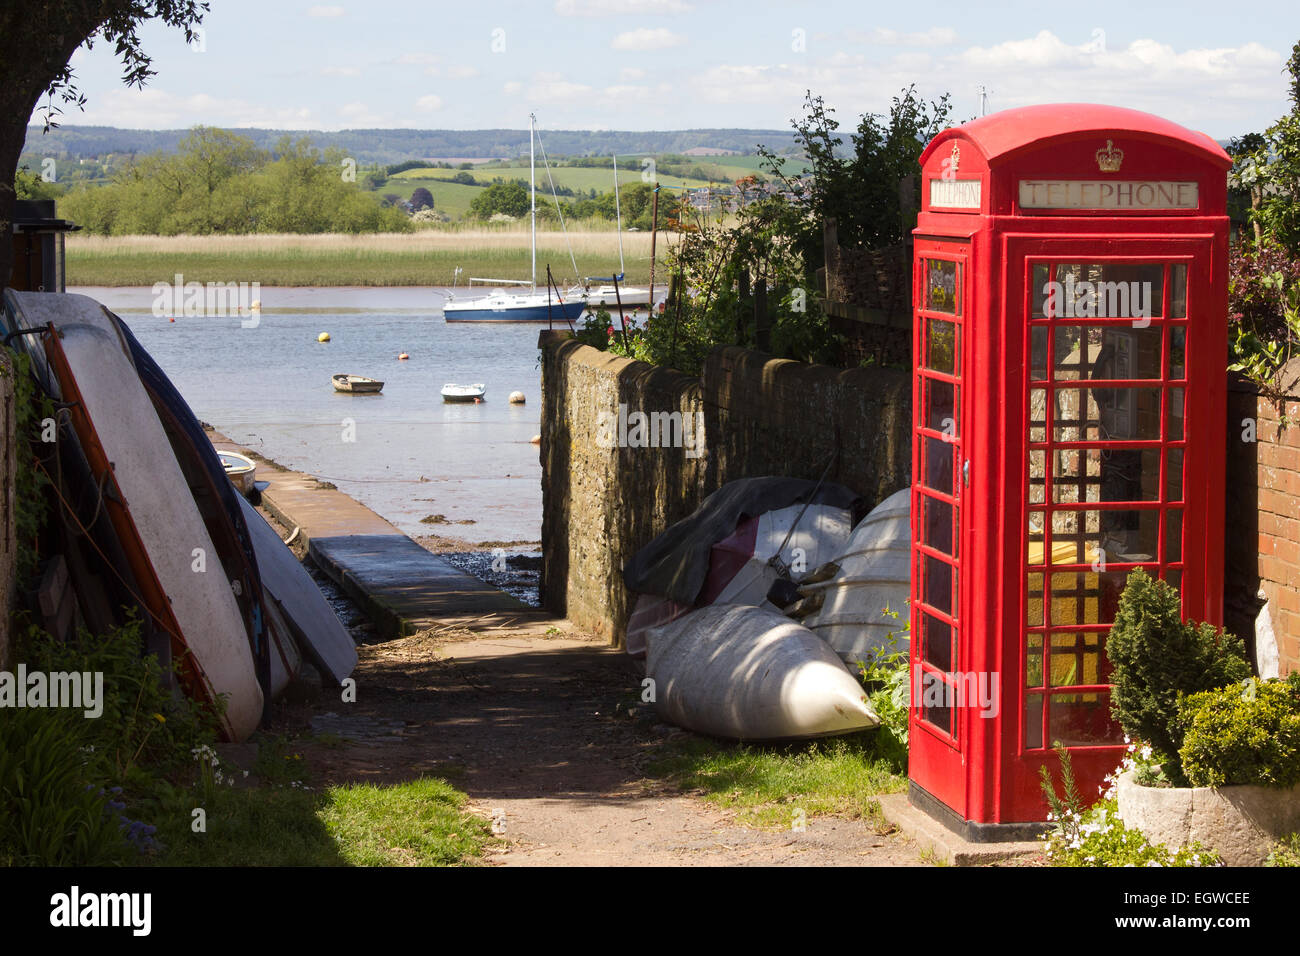 British red phone box next to the River Exe estuary in the village of Topsham, Devon UK, with views across the river. - Stock Image